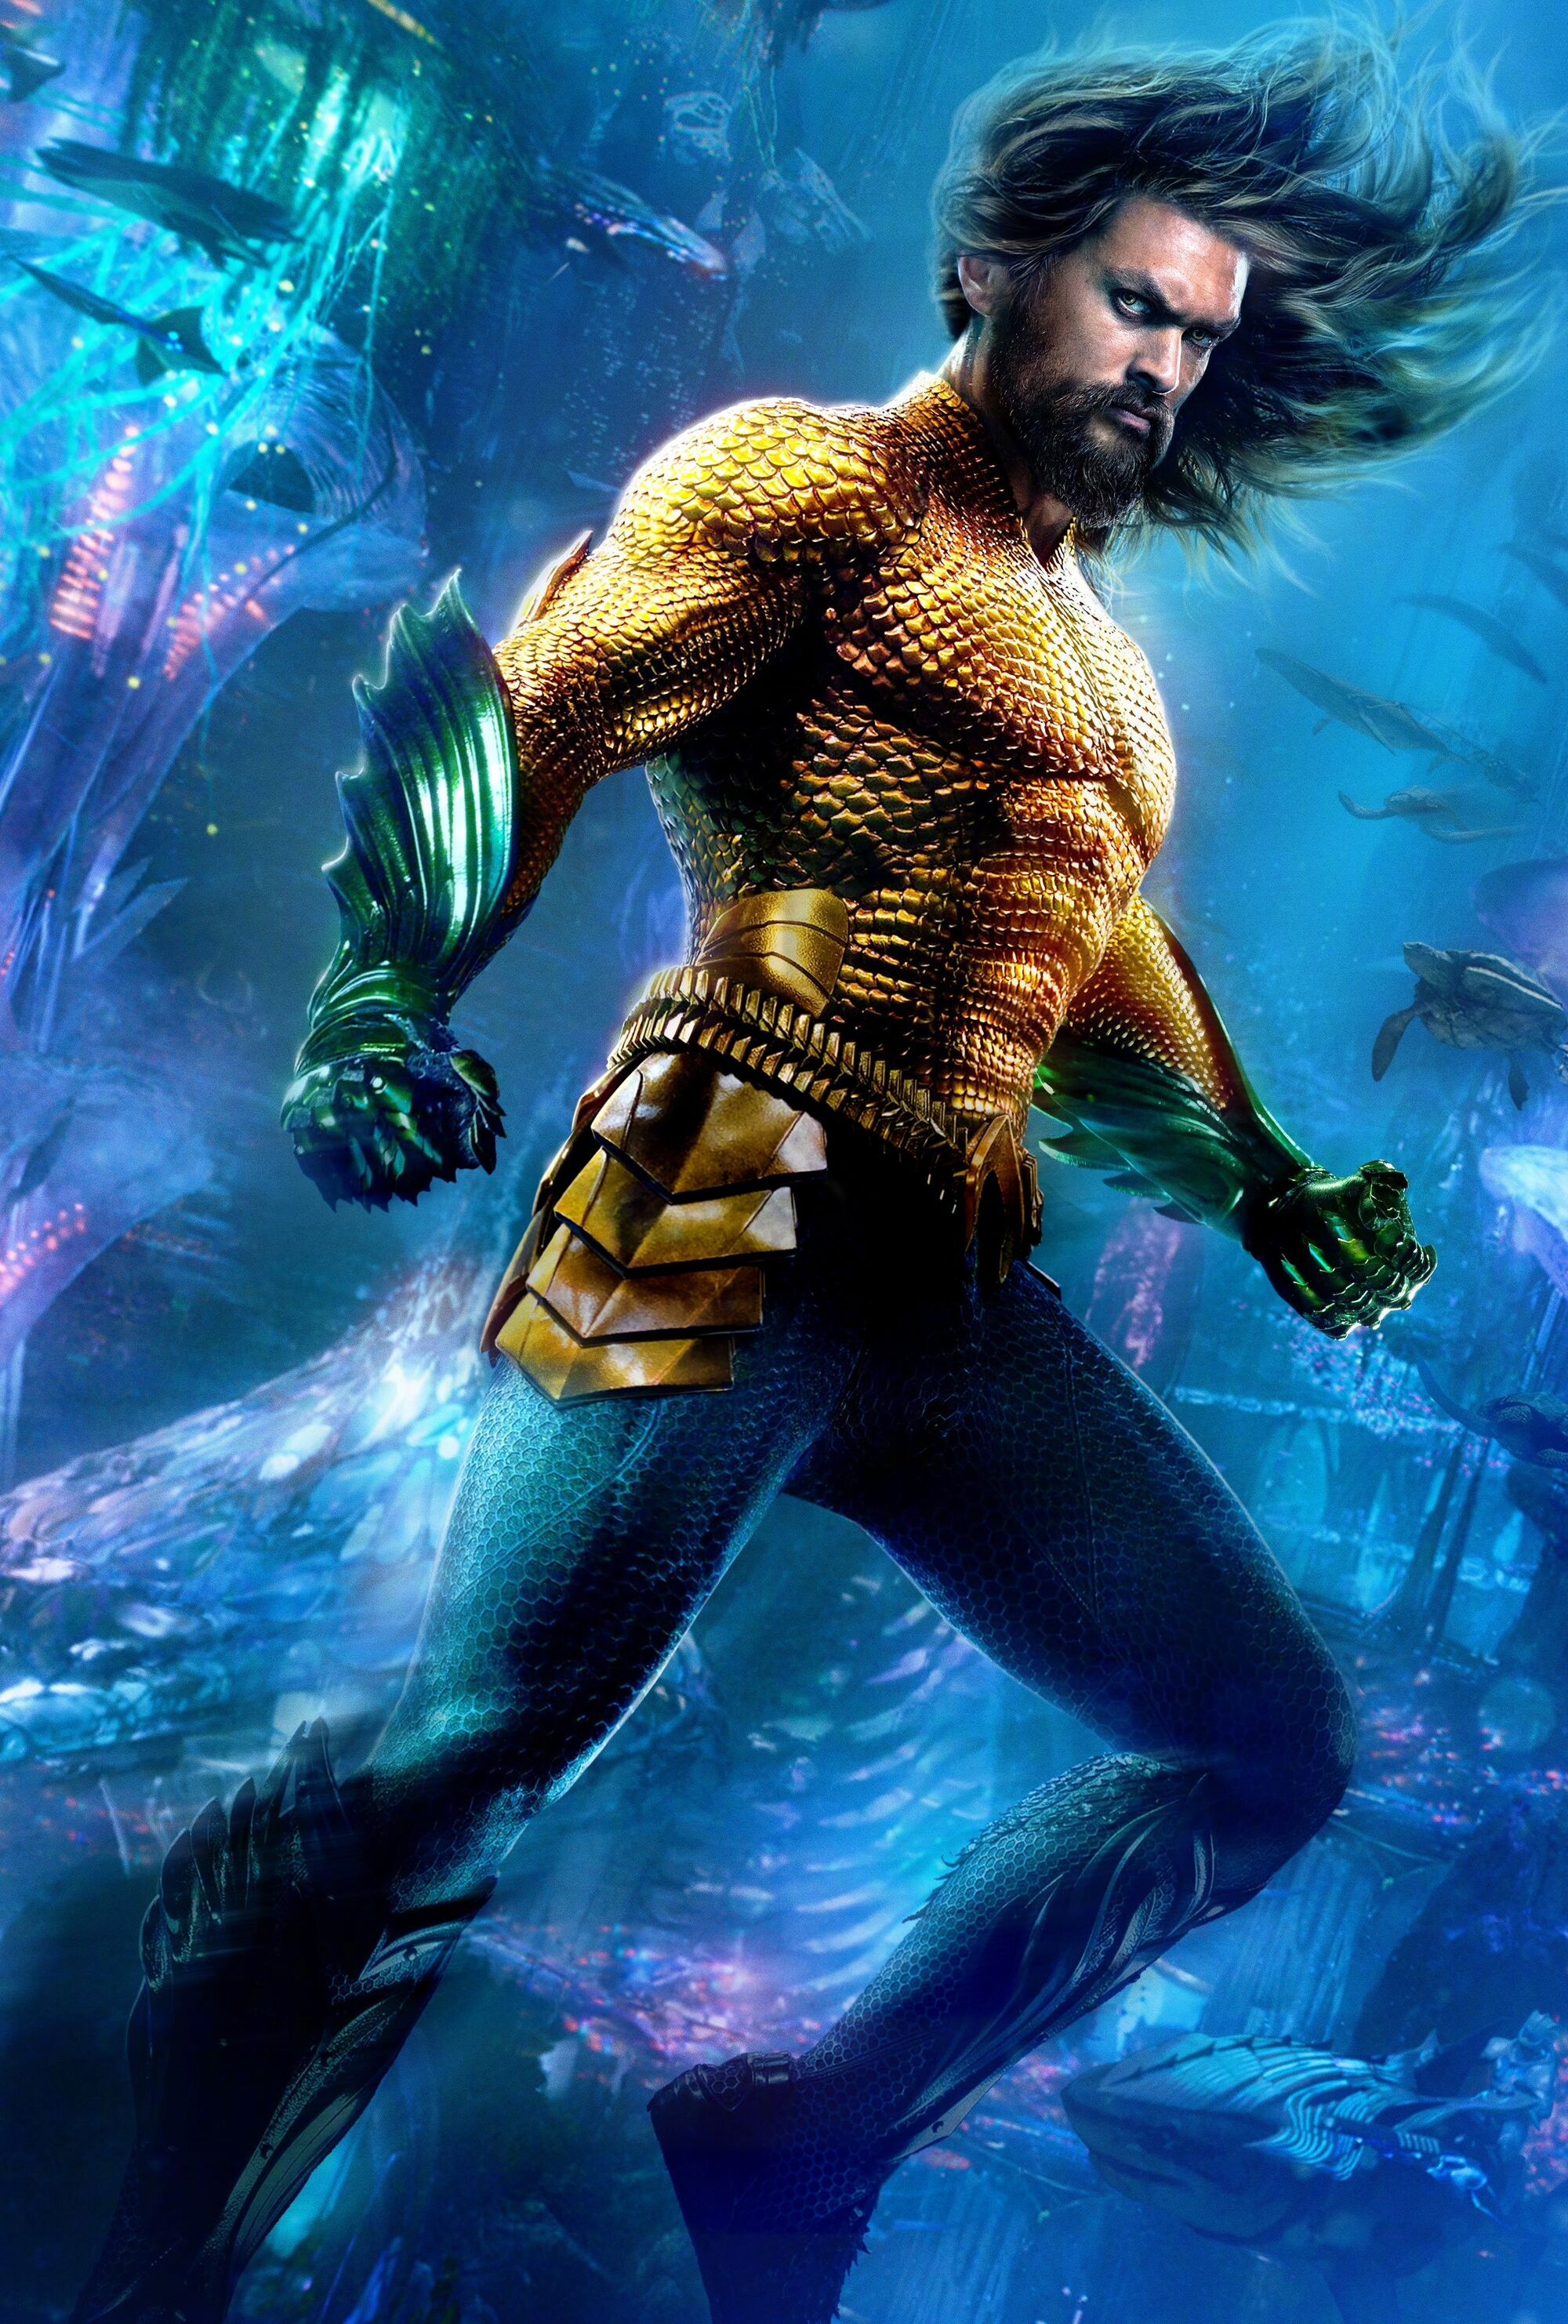 aquaman dc extended universe wiki fandom powered by wikiaAquaman #16